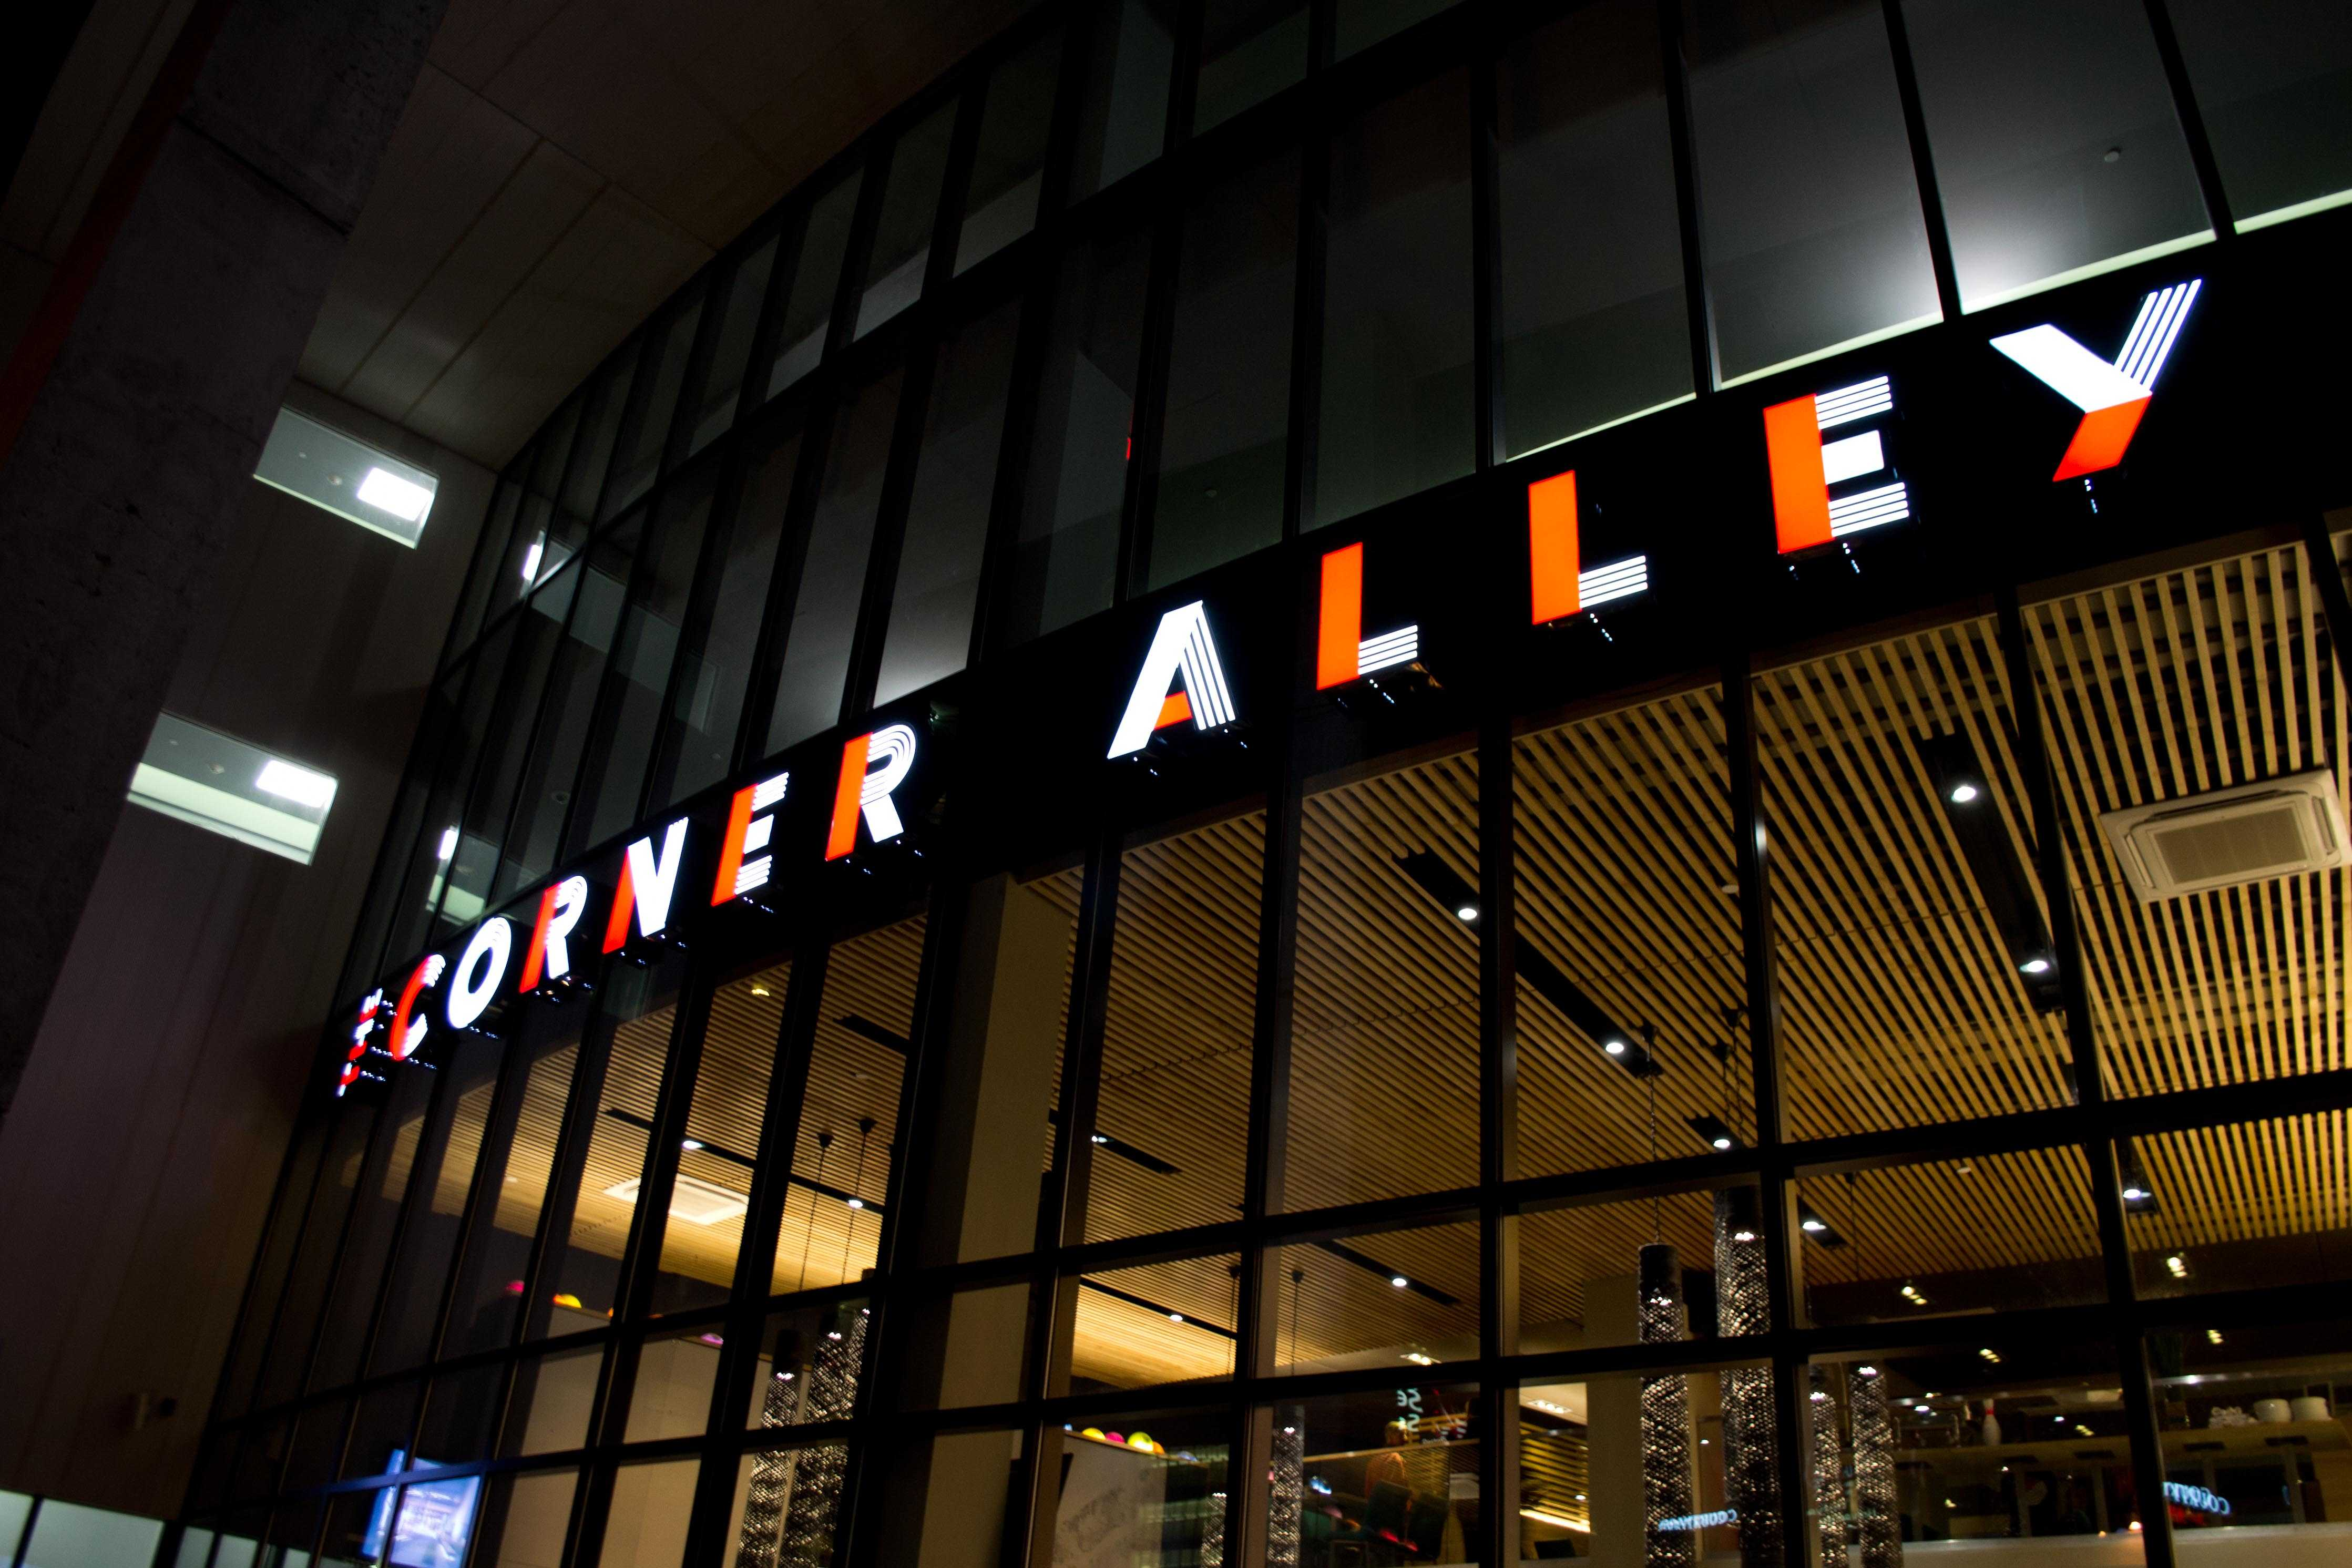 The new Corner Alley sign entices visitors to the highly anticipated venue.